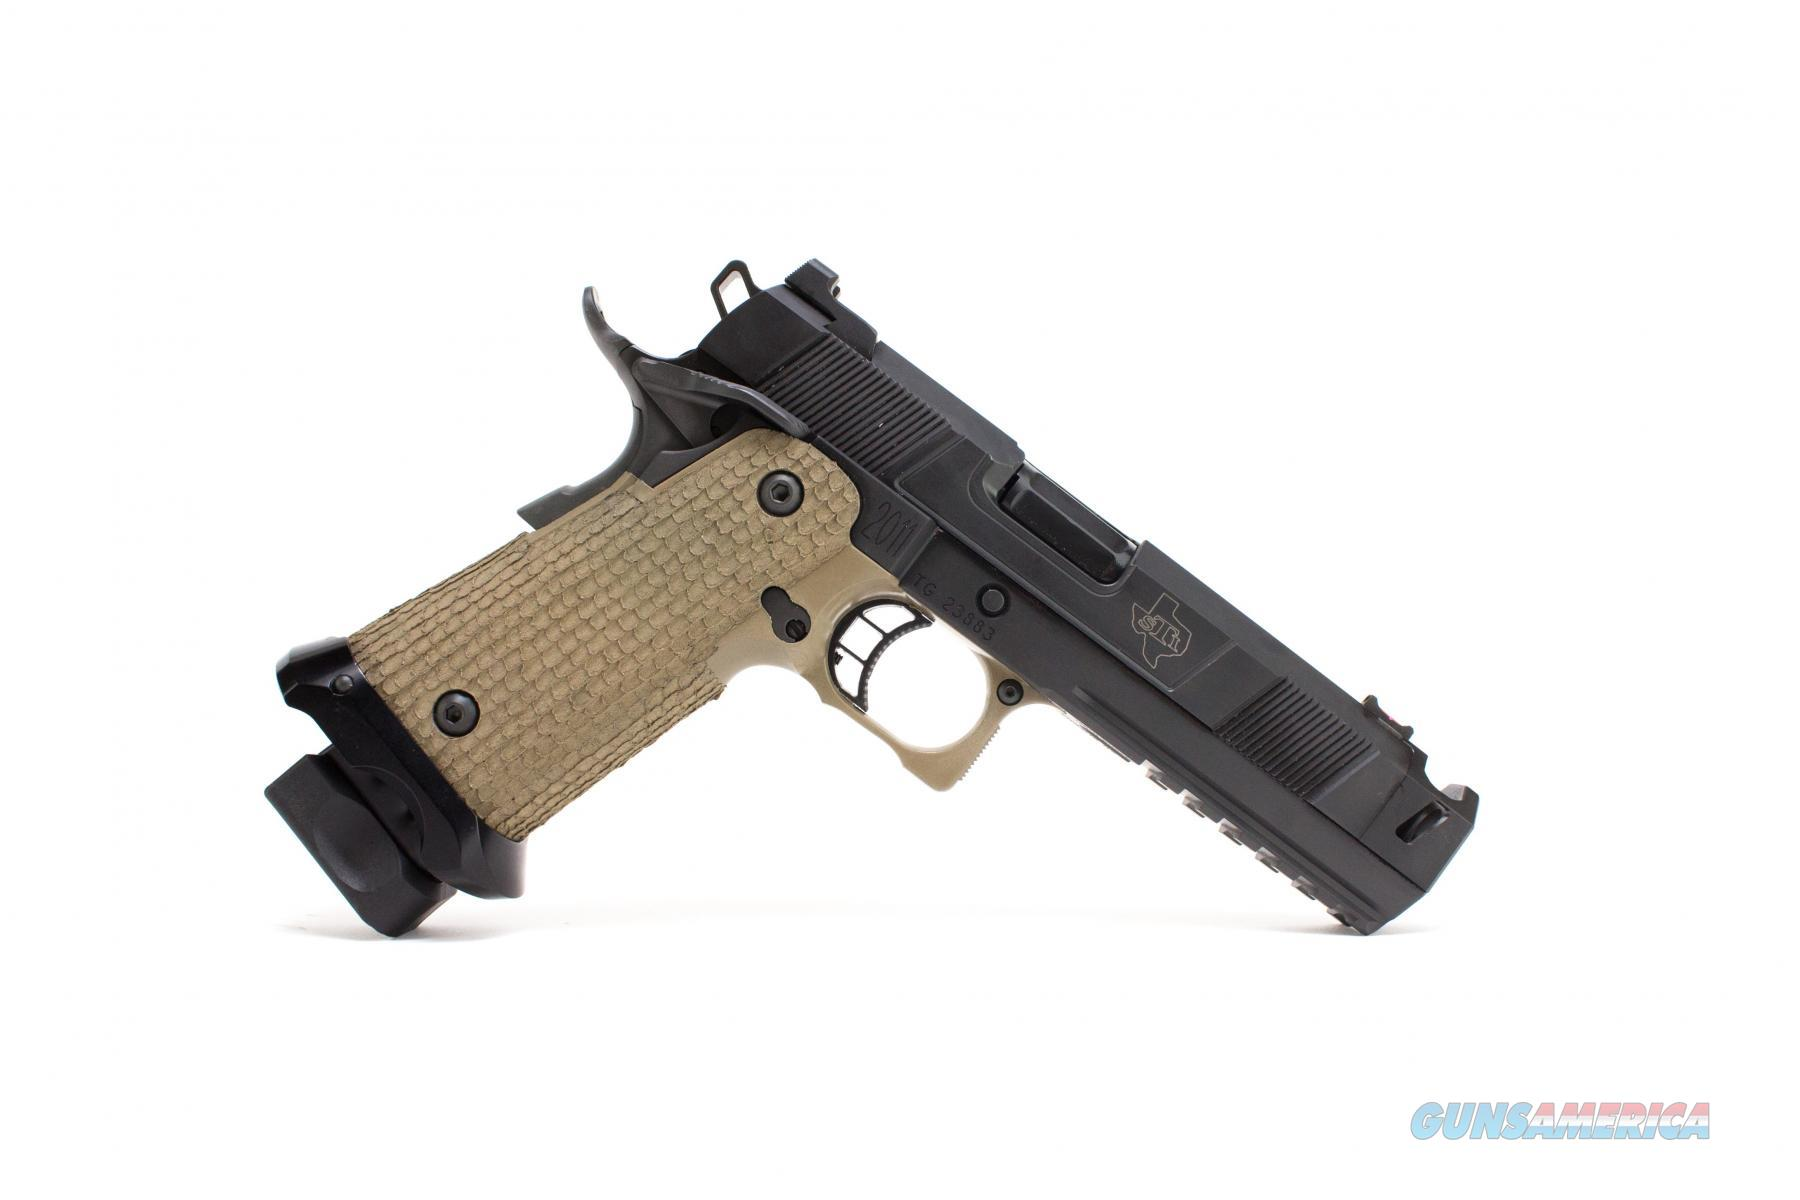 STI Costa Carry Comp 9mm - NEW, free shipping, no CC fees  Guns > Pistols > STI Pistols